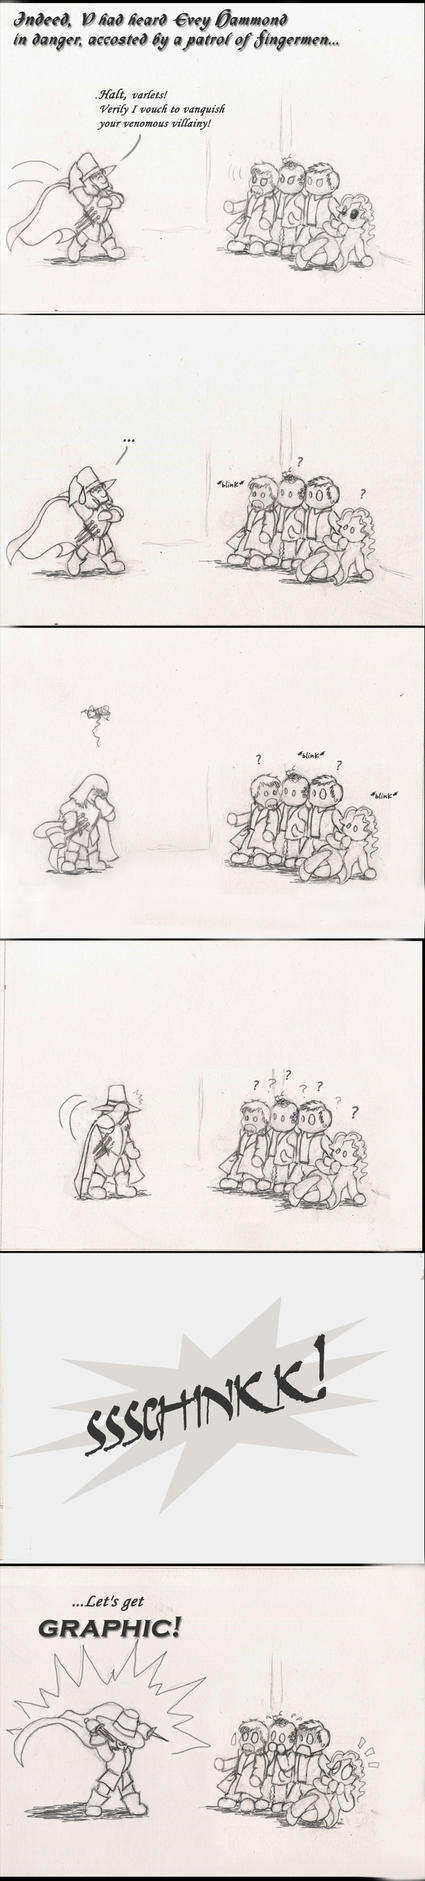 Fractured Fairytale, page 4 by FugueState